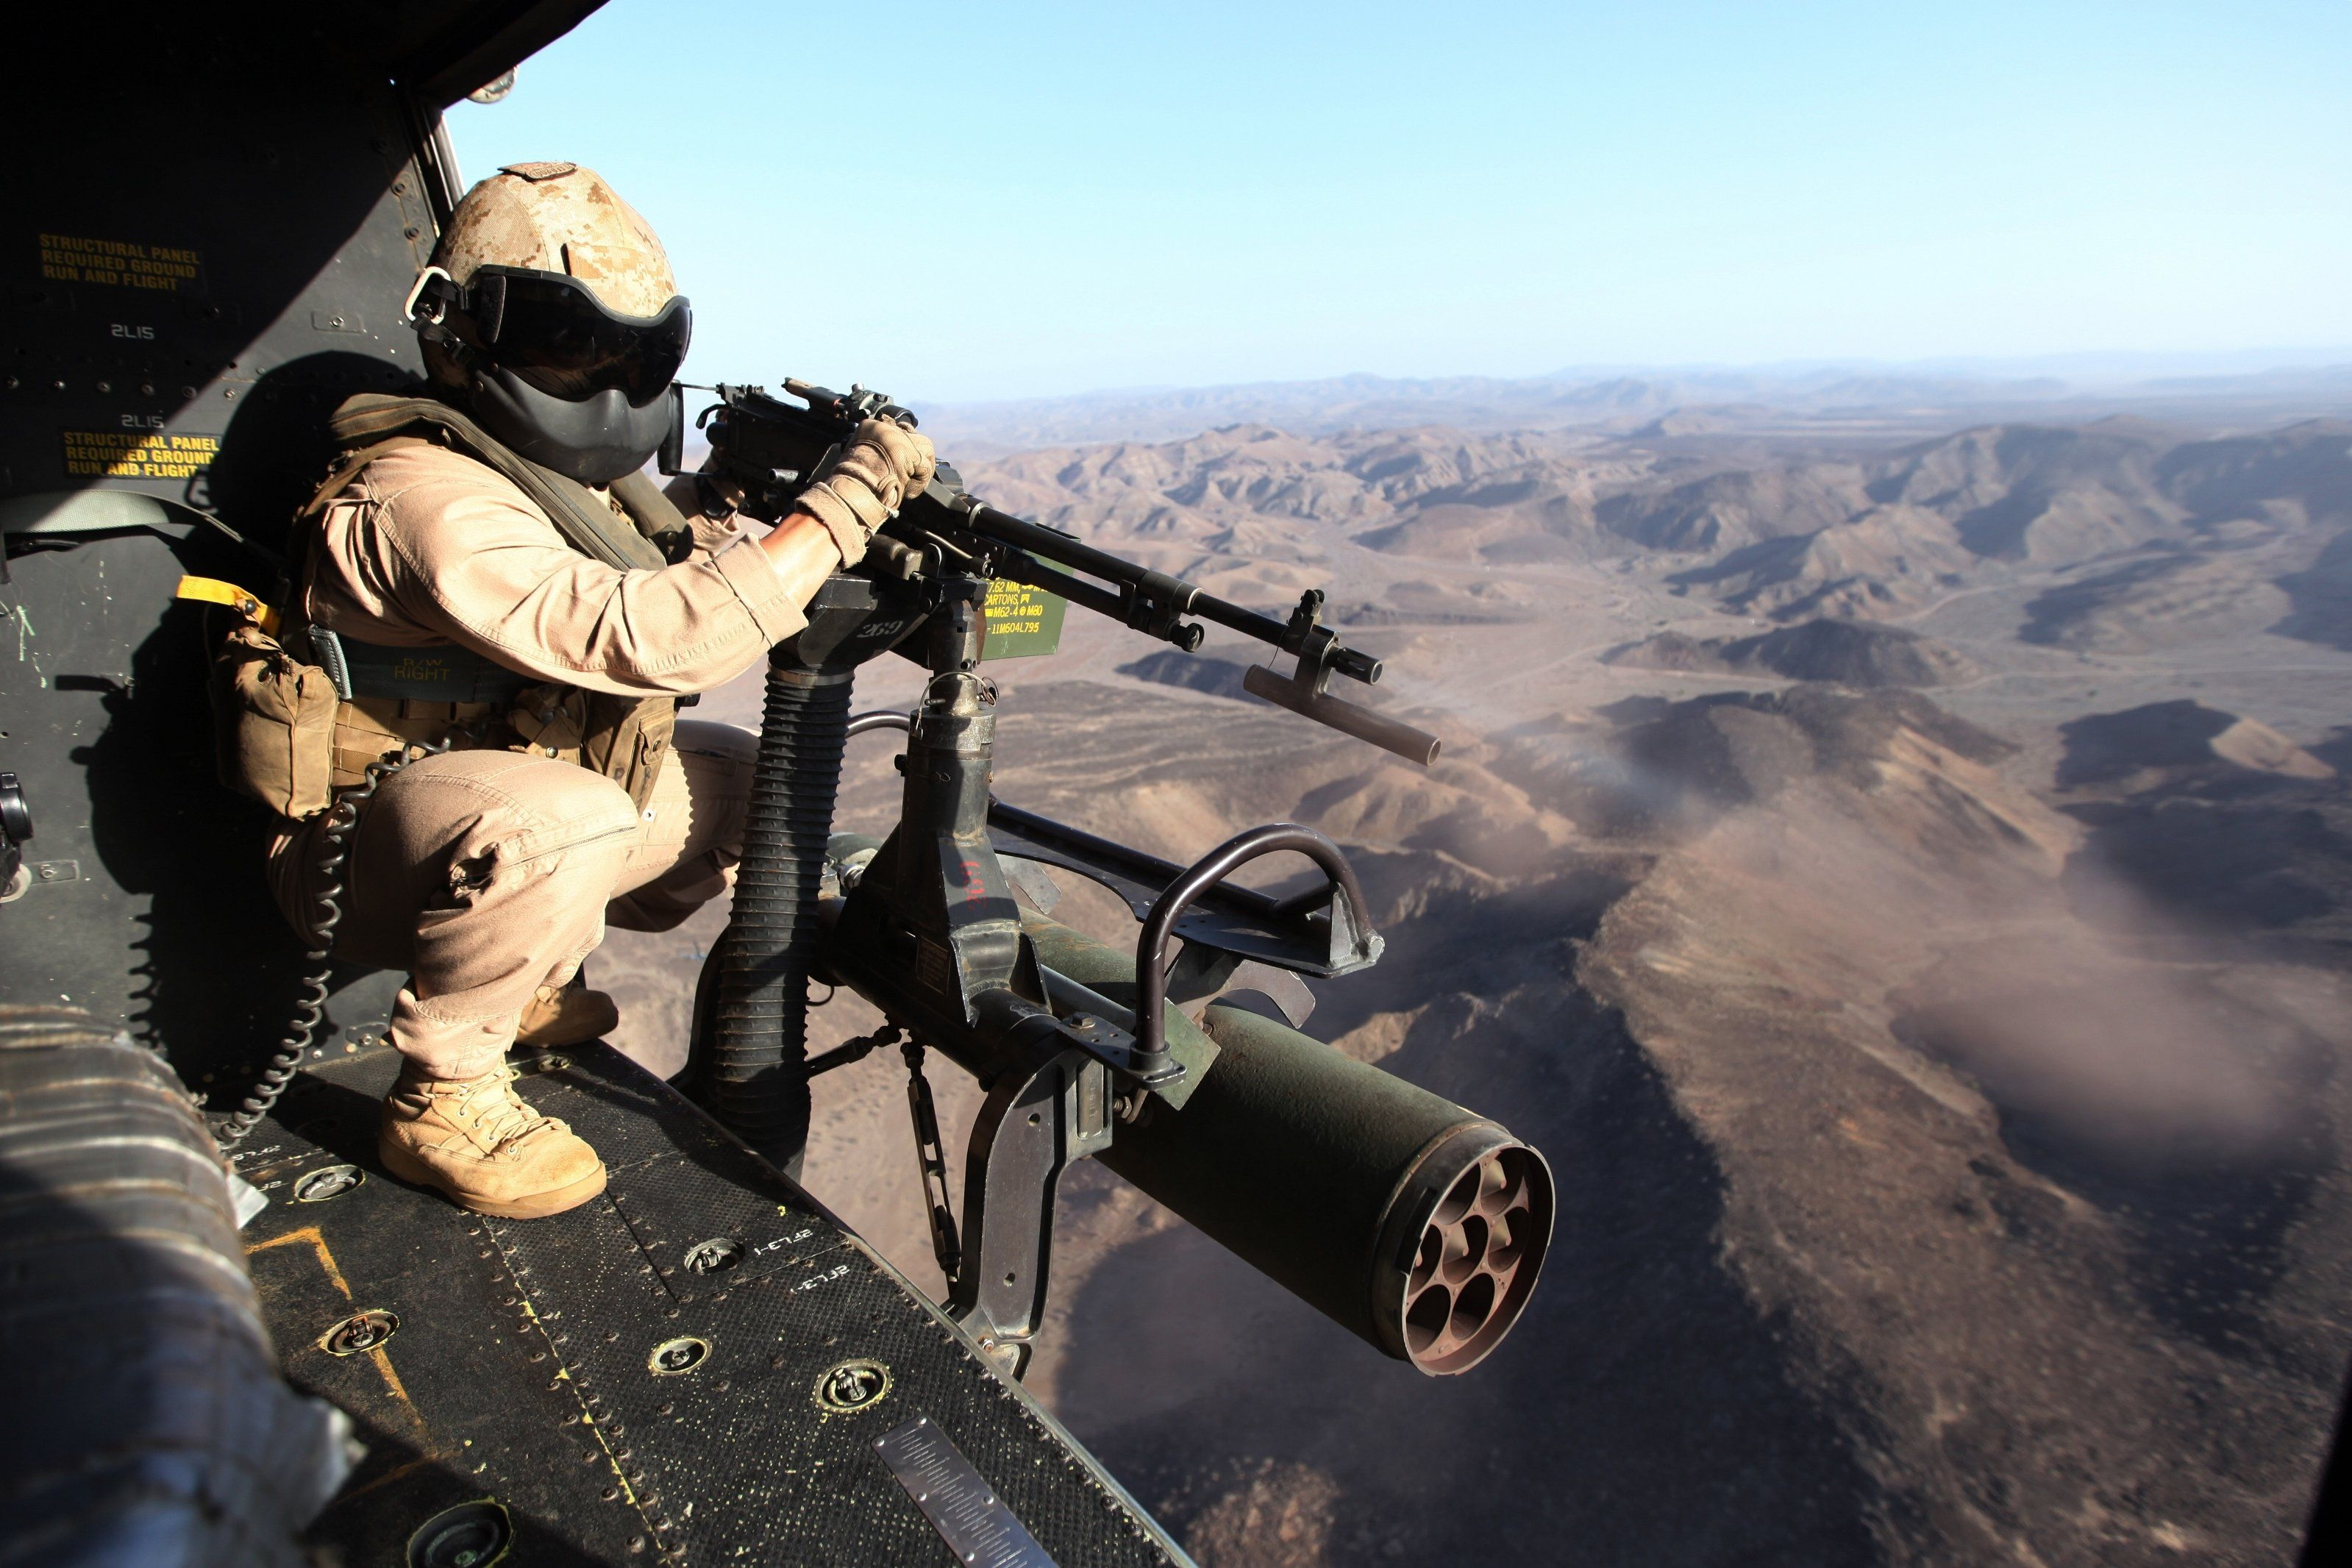 Helicopter Door Gunners are Awesome u2013 Aerial Gunnery in Modern Huey (Watch) & Helicopter Door Gunners are Awesome - Aerial Gunnery in Modern Huey ...